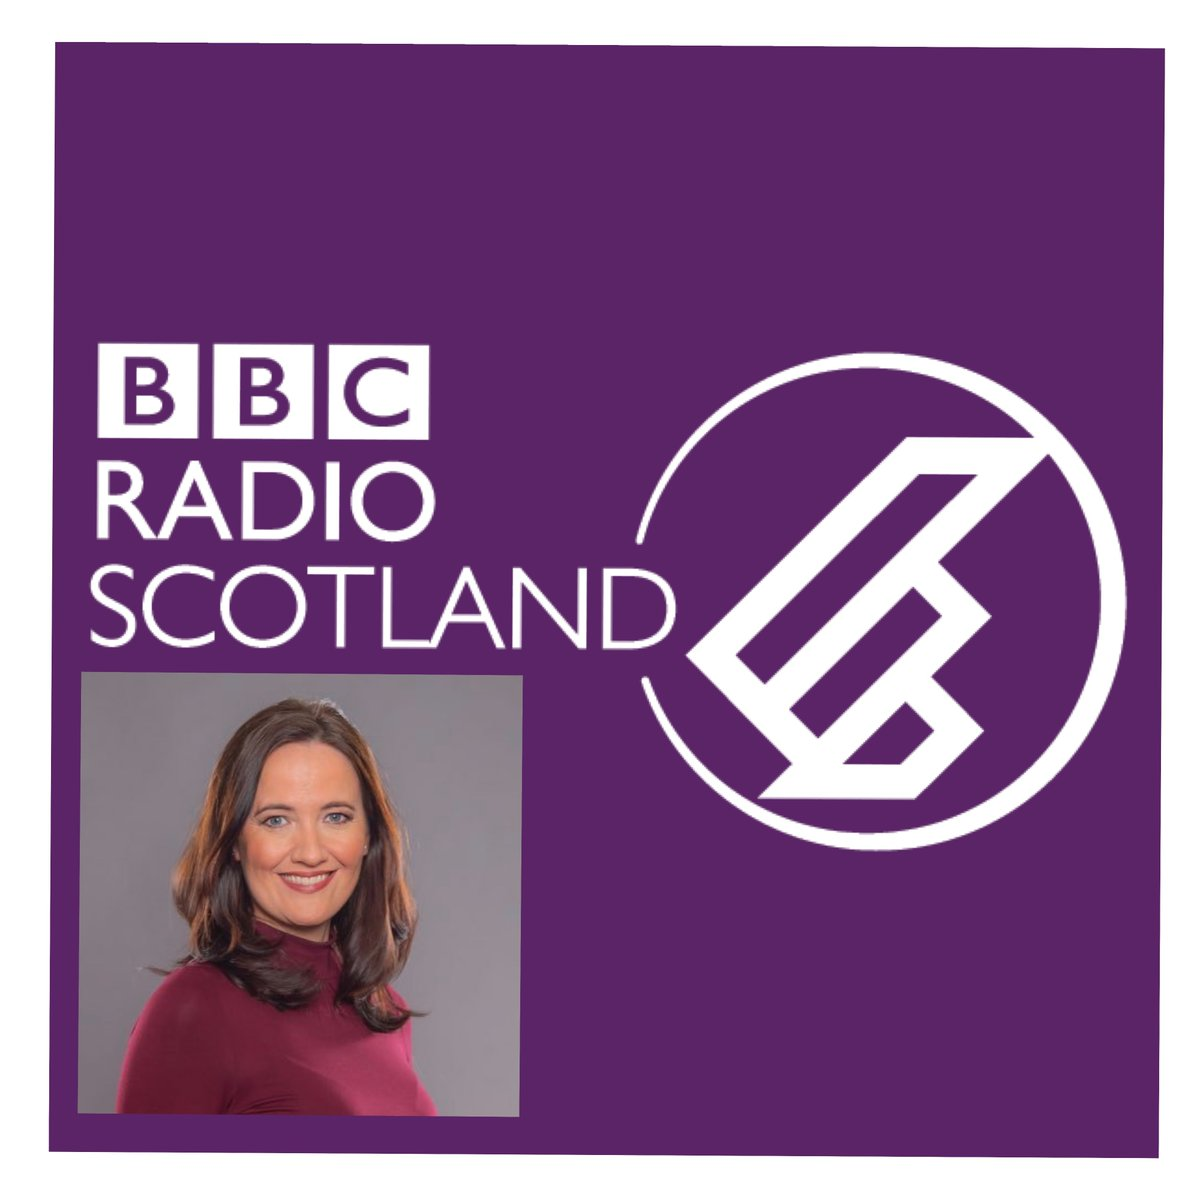 Delighted to be speaking to @BBCLauraMac on @BBCRadioScot about violence & abuse #shopworkers face - in Scotland today 1 of my @coopuk colleagues will be attacked & 10 will be abused so @DJohnsonMSP Bill is so important. Scotland leading the way, I hope @HouseofCommons follows!